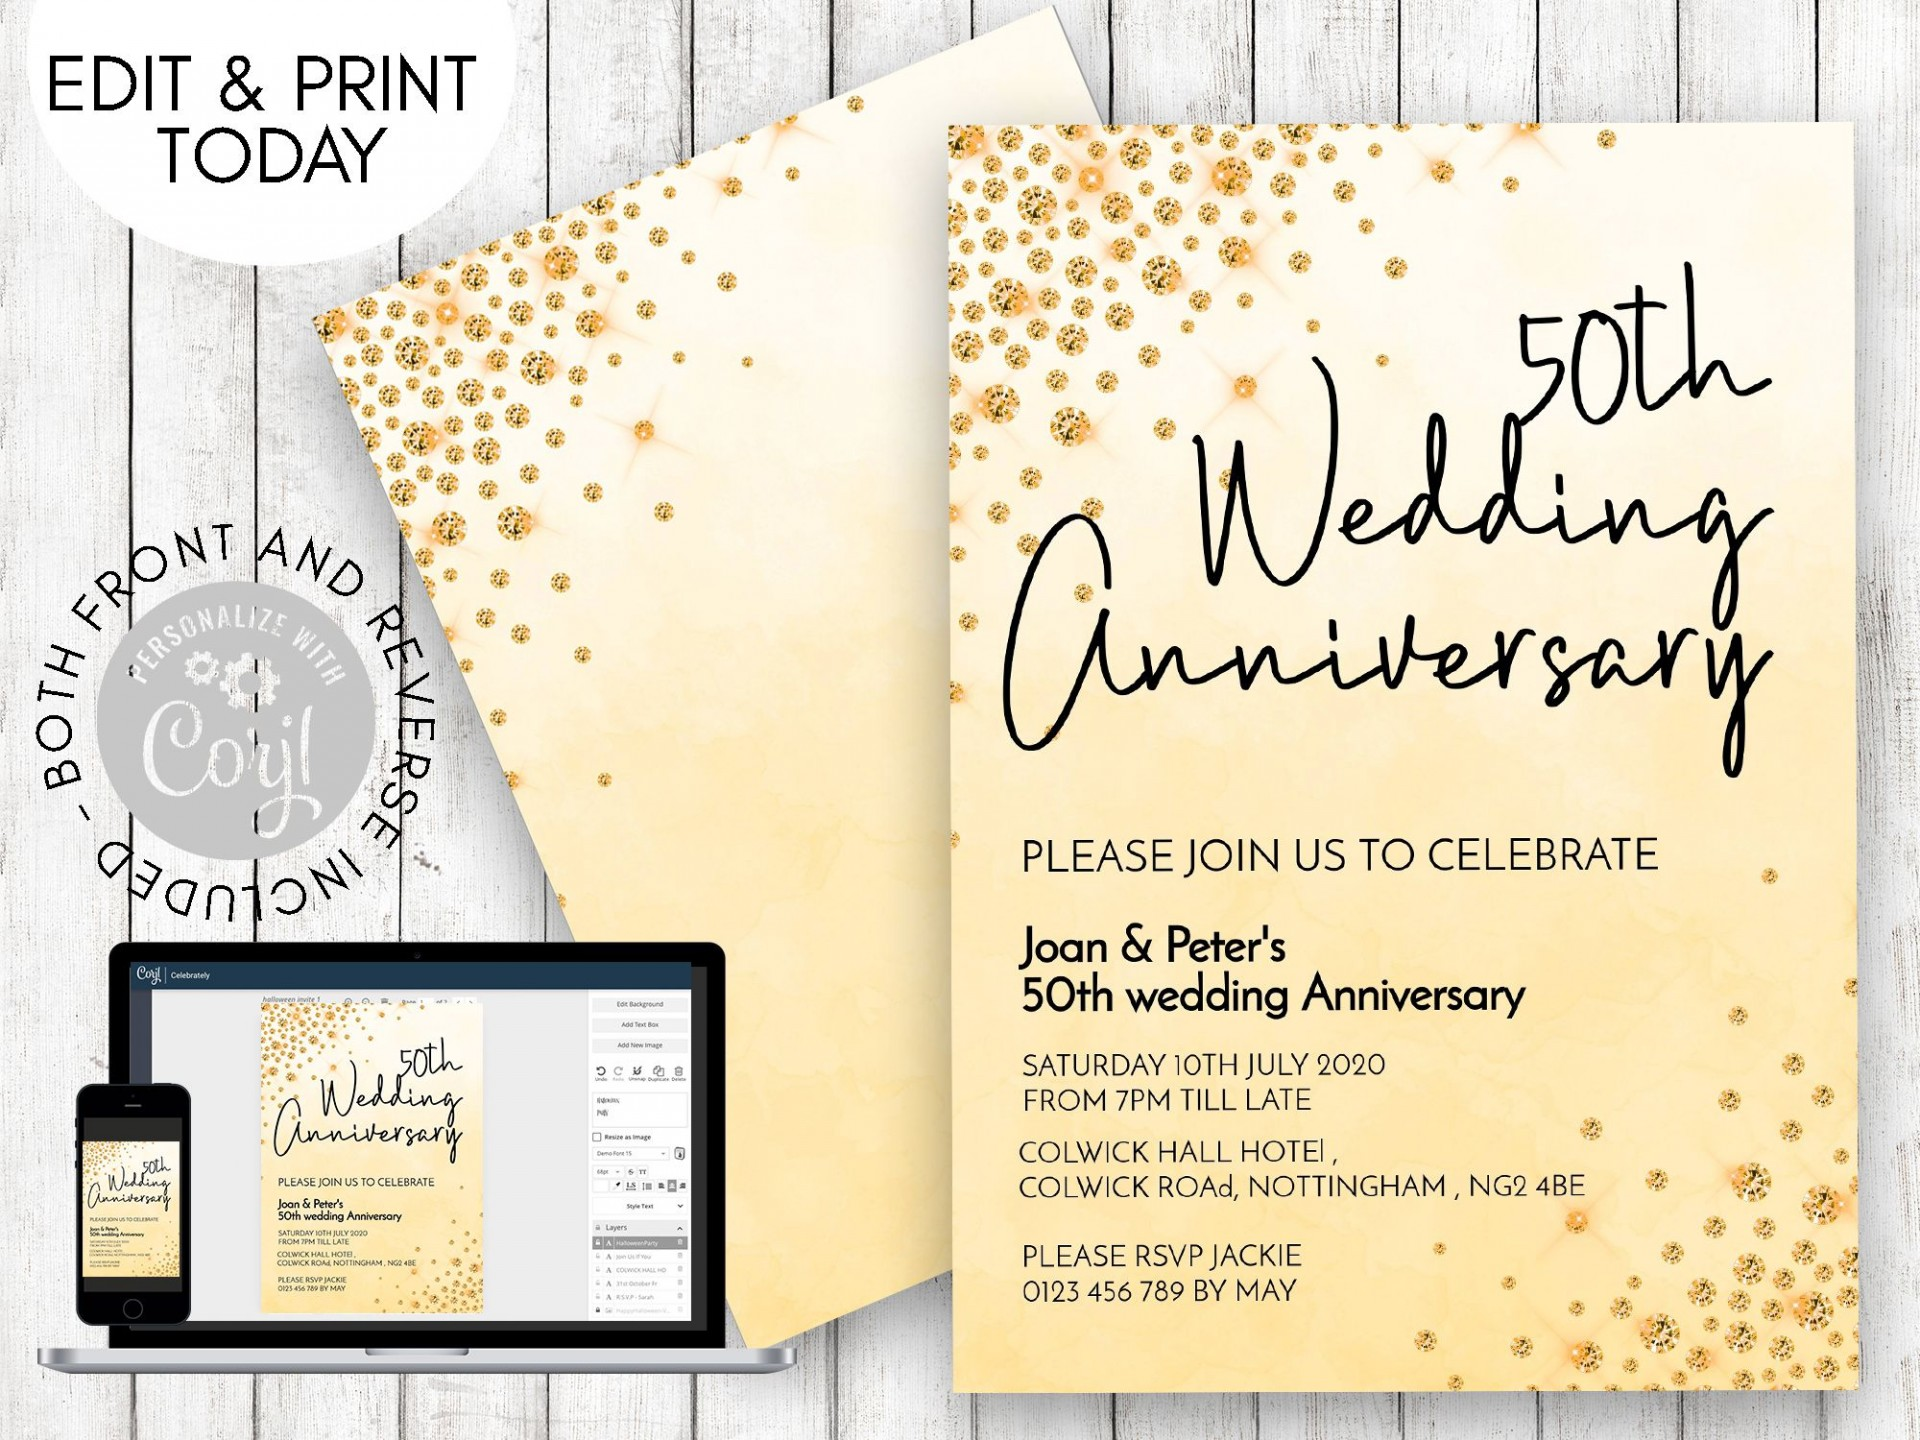 001 Unusual 50th Wedding Anniversary Invitation Template Free Highest Quality  Download Golden Microsoft Word1920